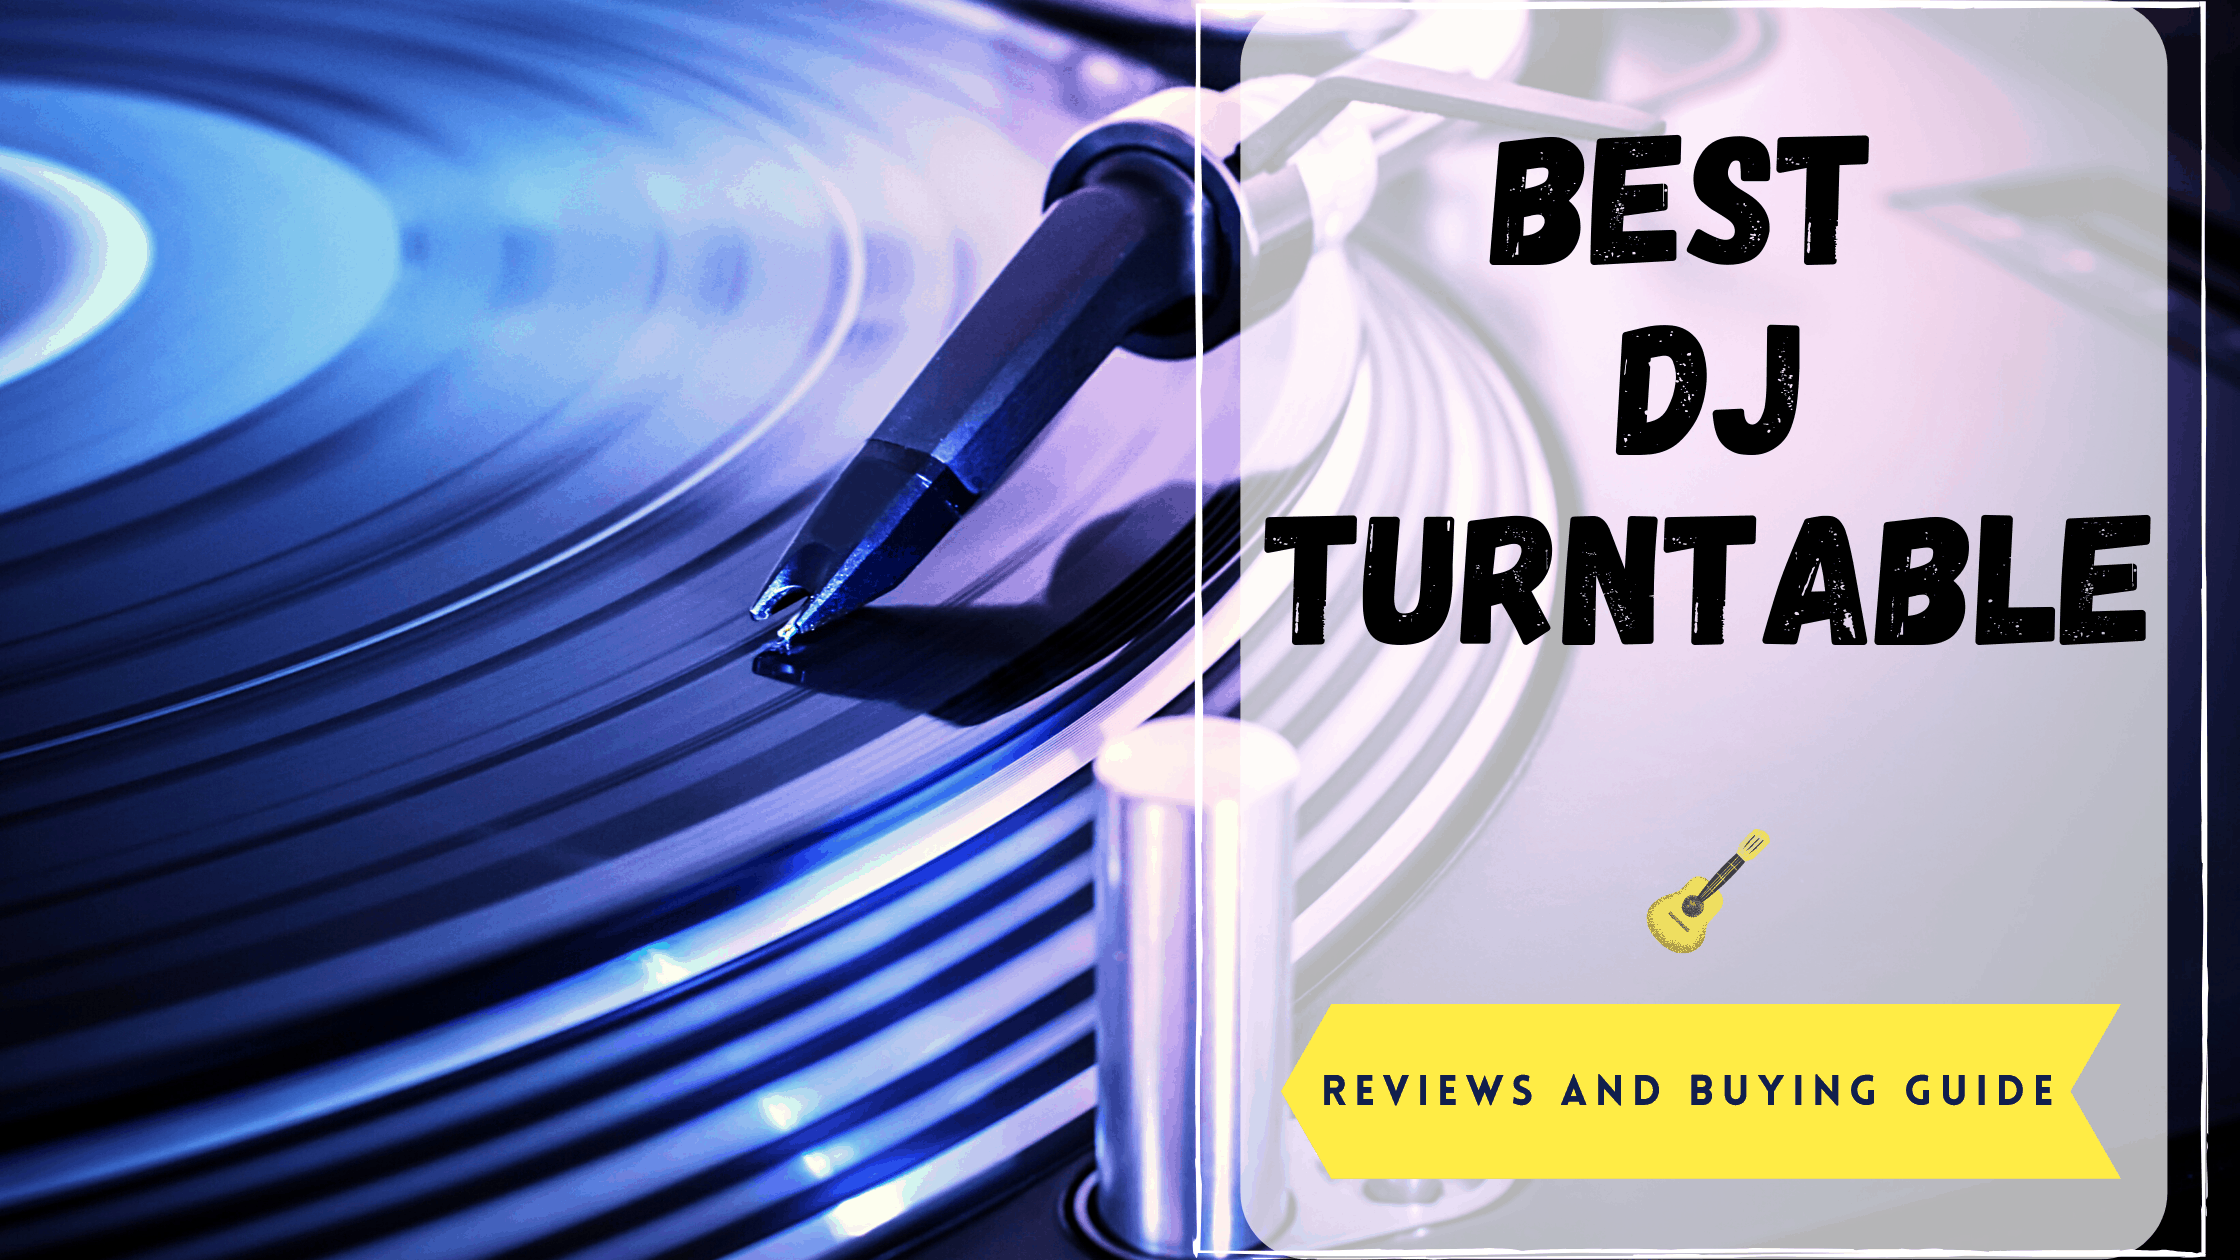 Best Dj Turntable